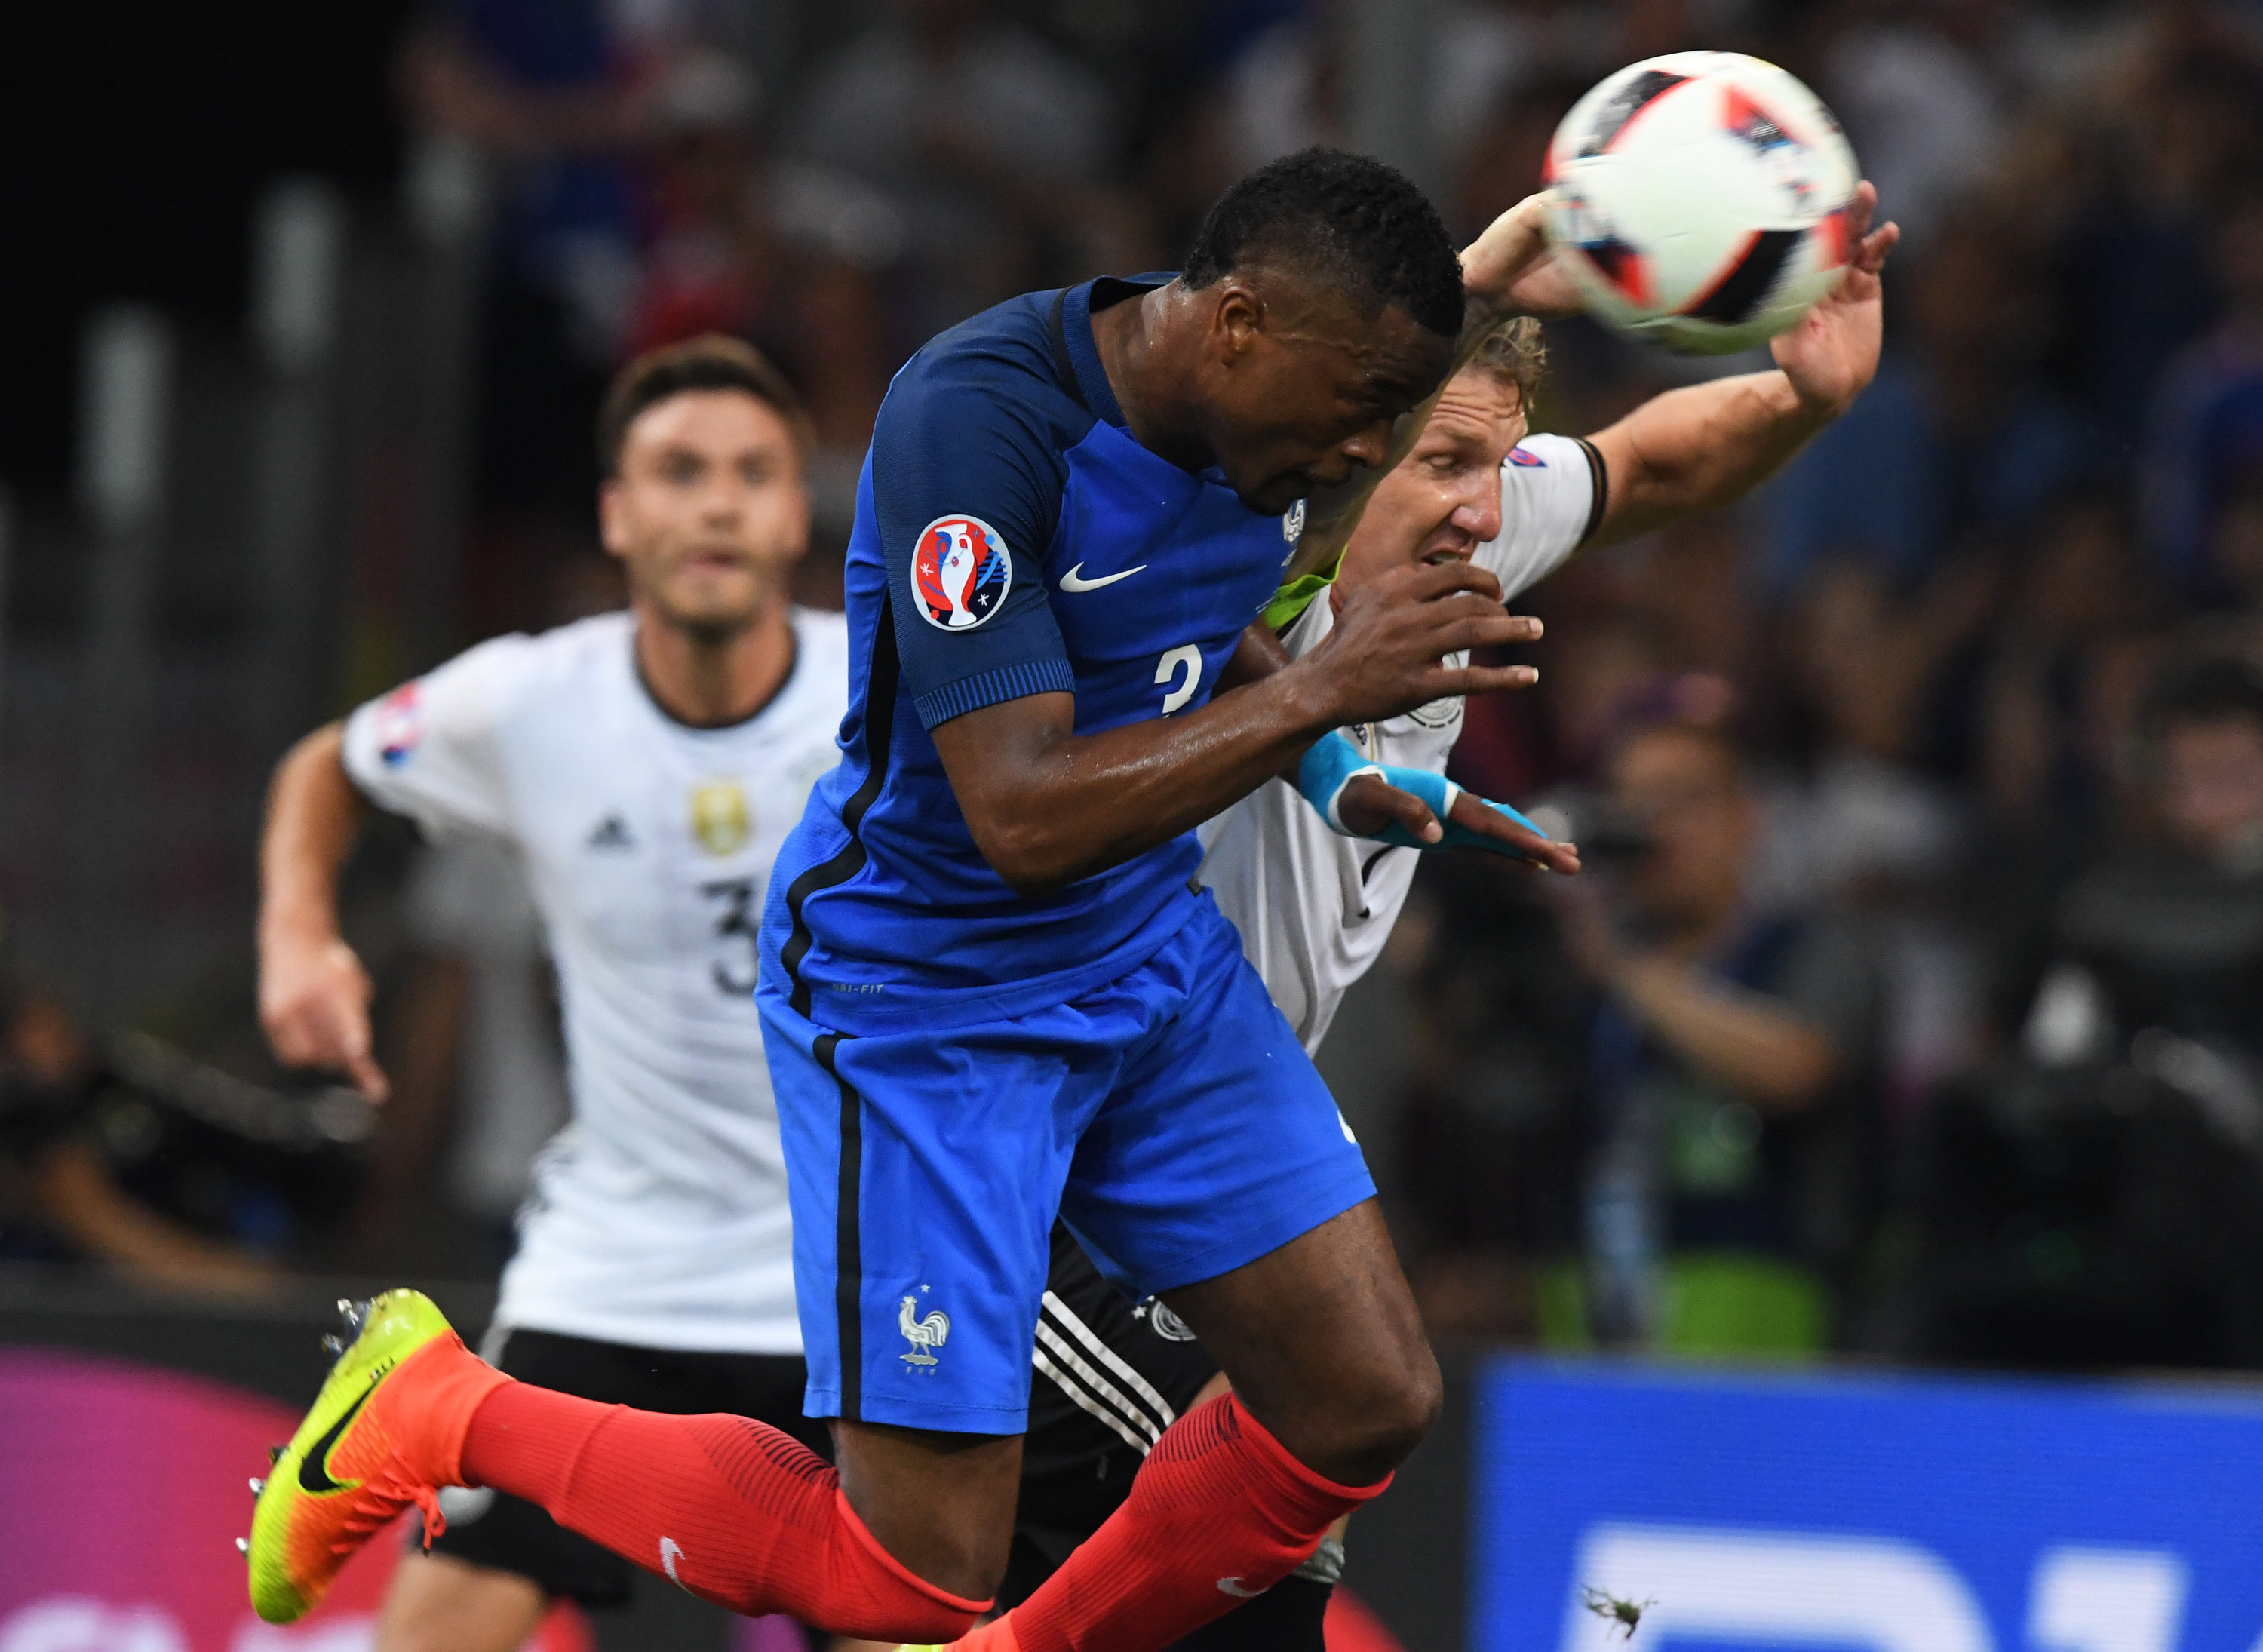 Germany's Bastian Schweinsteiger (R) and Patrice Evra of France vie for the ball during the UEFA EURO 2016 semi final soccer match between Germany and France at the Stade Velodrome in Marseille, France, 07 July 2016. Photo: Peter Kneffel/dpa (RESTRICTIONS APPLY: For editorial news reporting purposes only. Not used for commercial or marketing purposes without prior written approval of UEFA. Images must appear as still images and must not emulate match action video footage. Photographs published in online publications (whether via the Internet or otherwise) shall have an interval of at least 20 seconds between the posting.) +++(c) dpa - Bildfunk+++